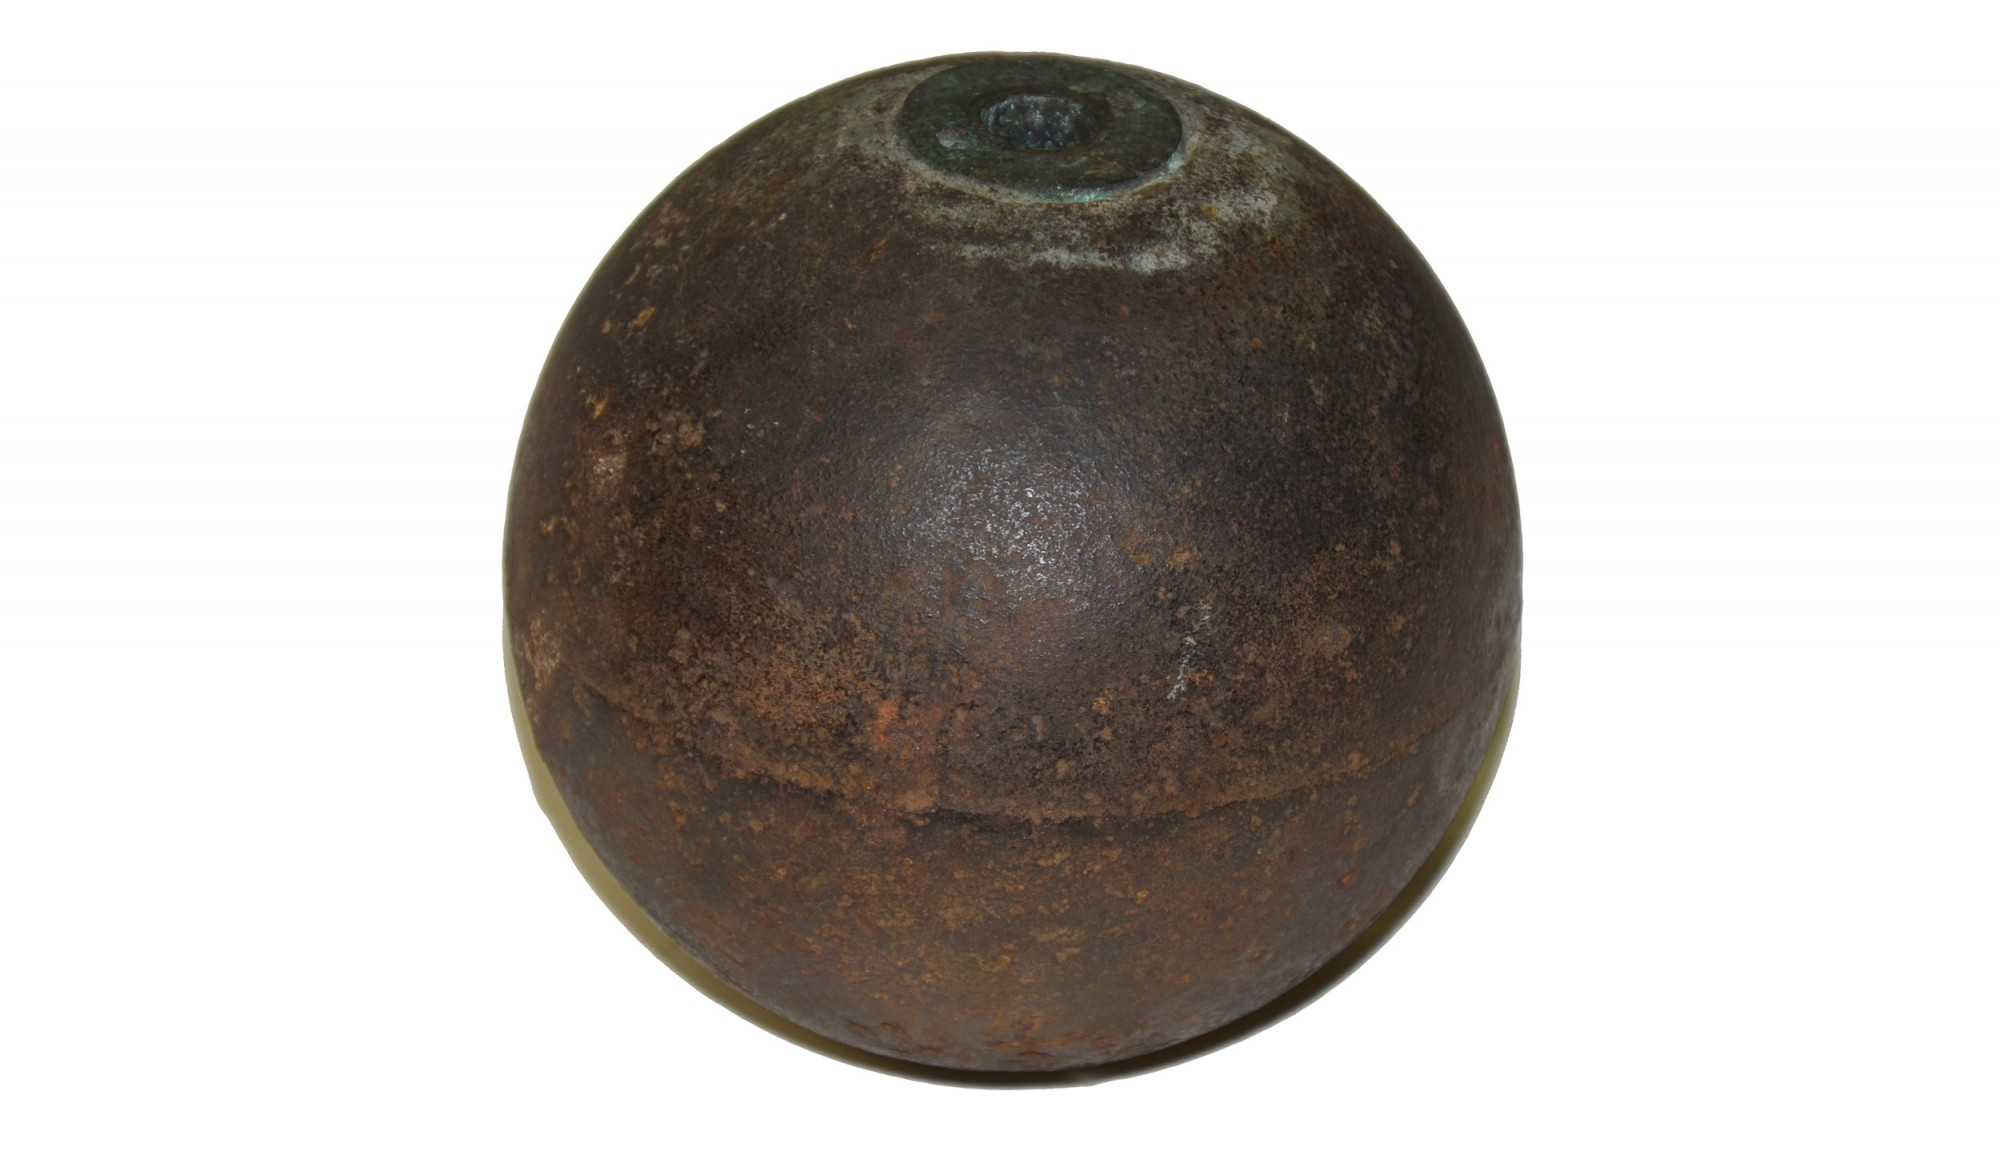 CS 4.52 INCH 12 POUNDER SPHERICAL SHELL WITH CS FUSE PLUG FROM GETTYSBURG COLLECTION